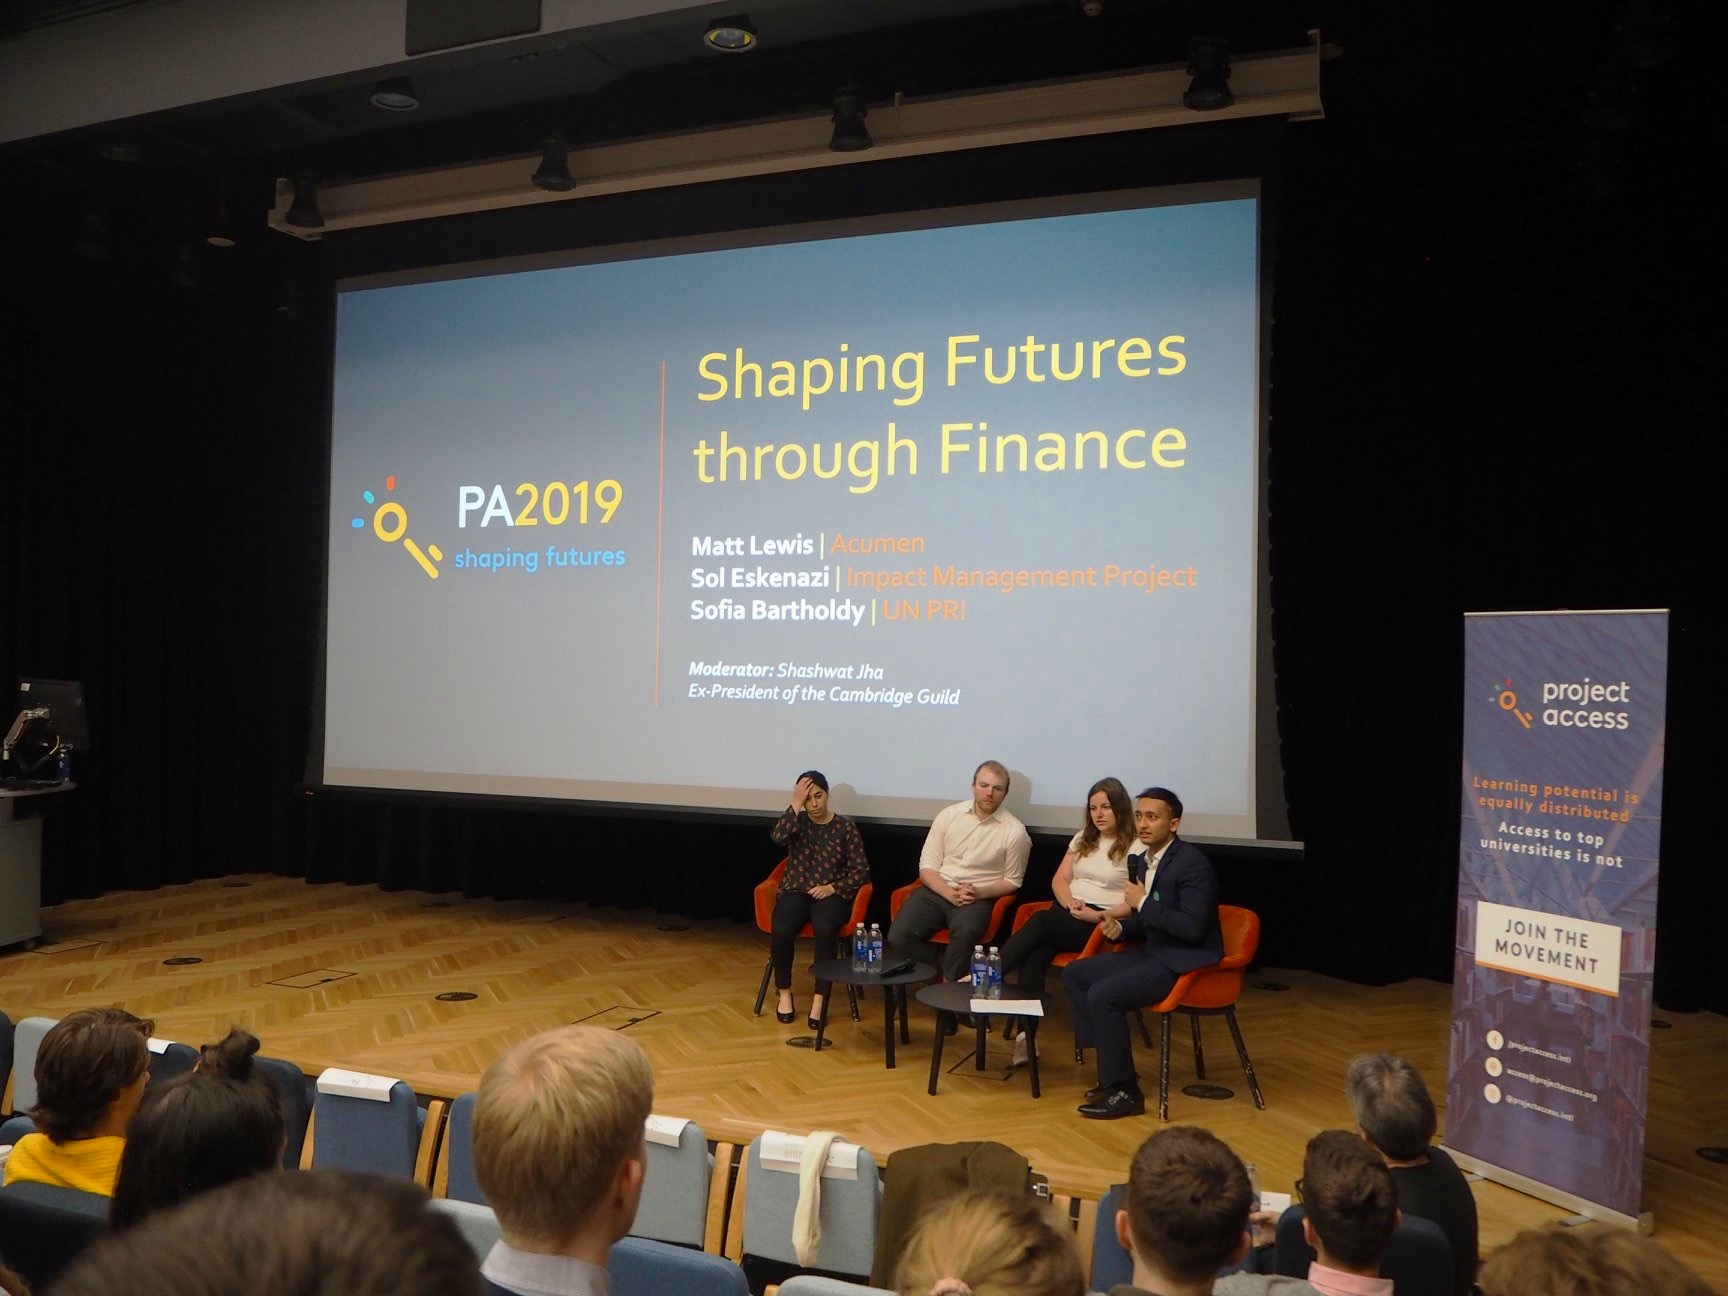 The first panel: Shaping Futures through Finance